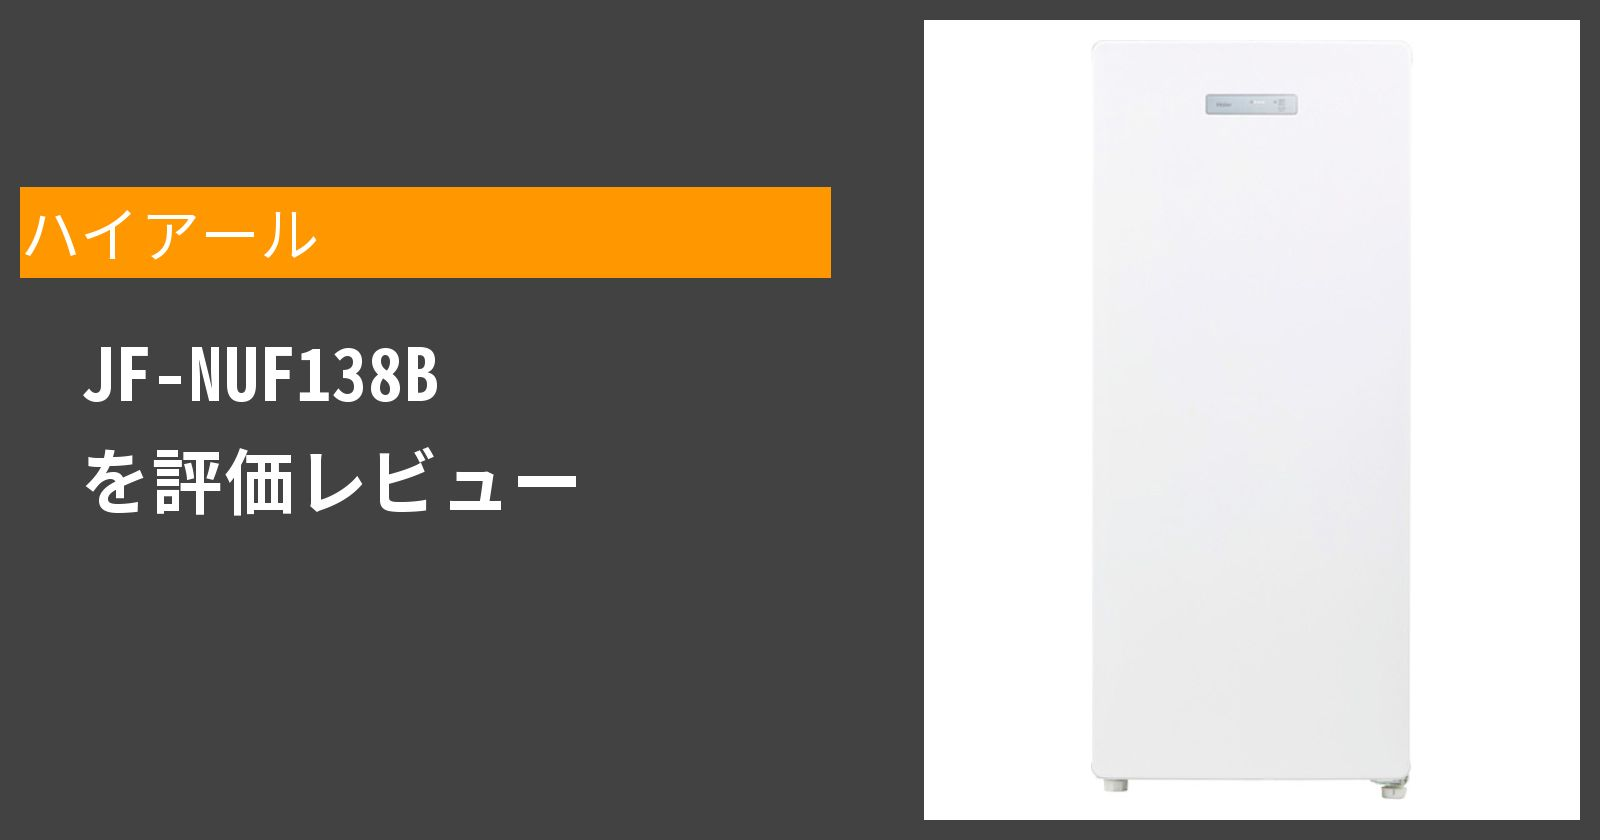 JF-NUF138Bを徹底評価